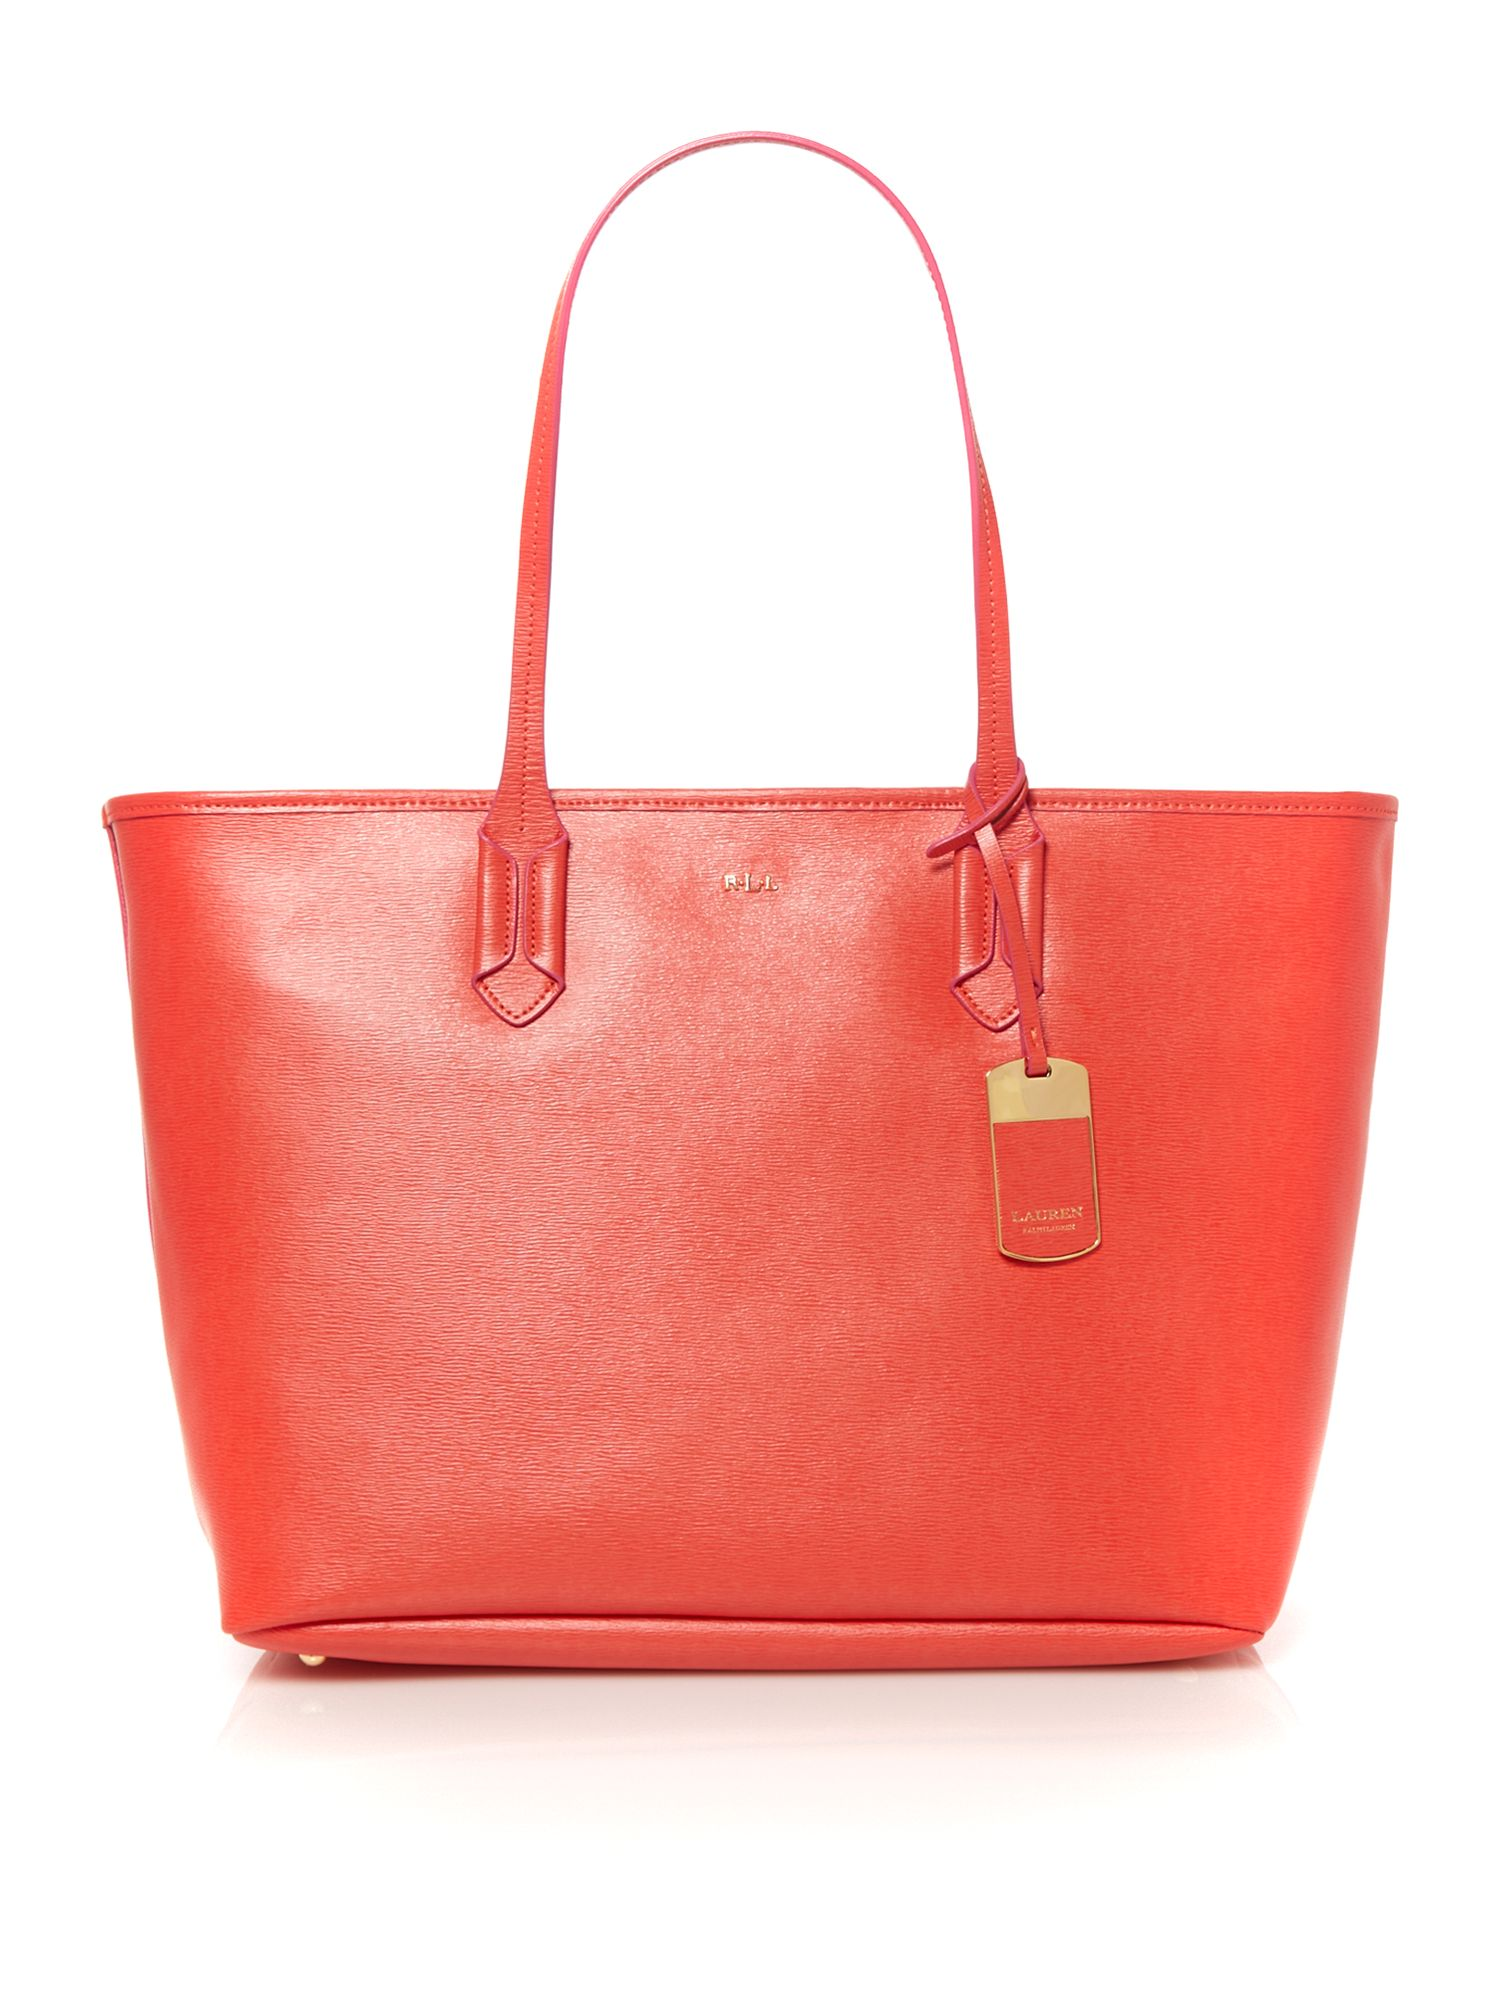 Tate coral large tote bag